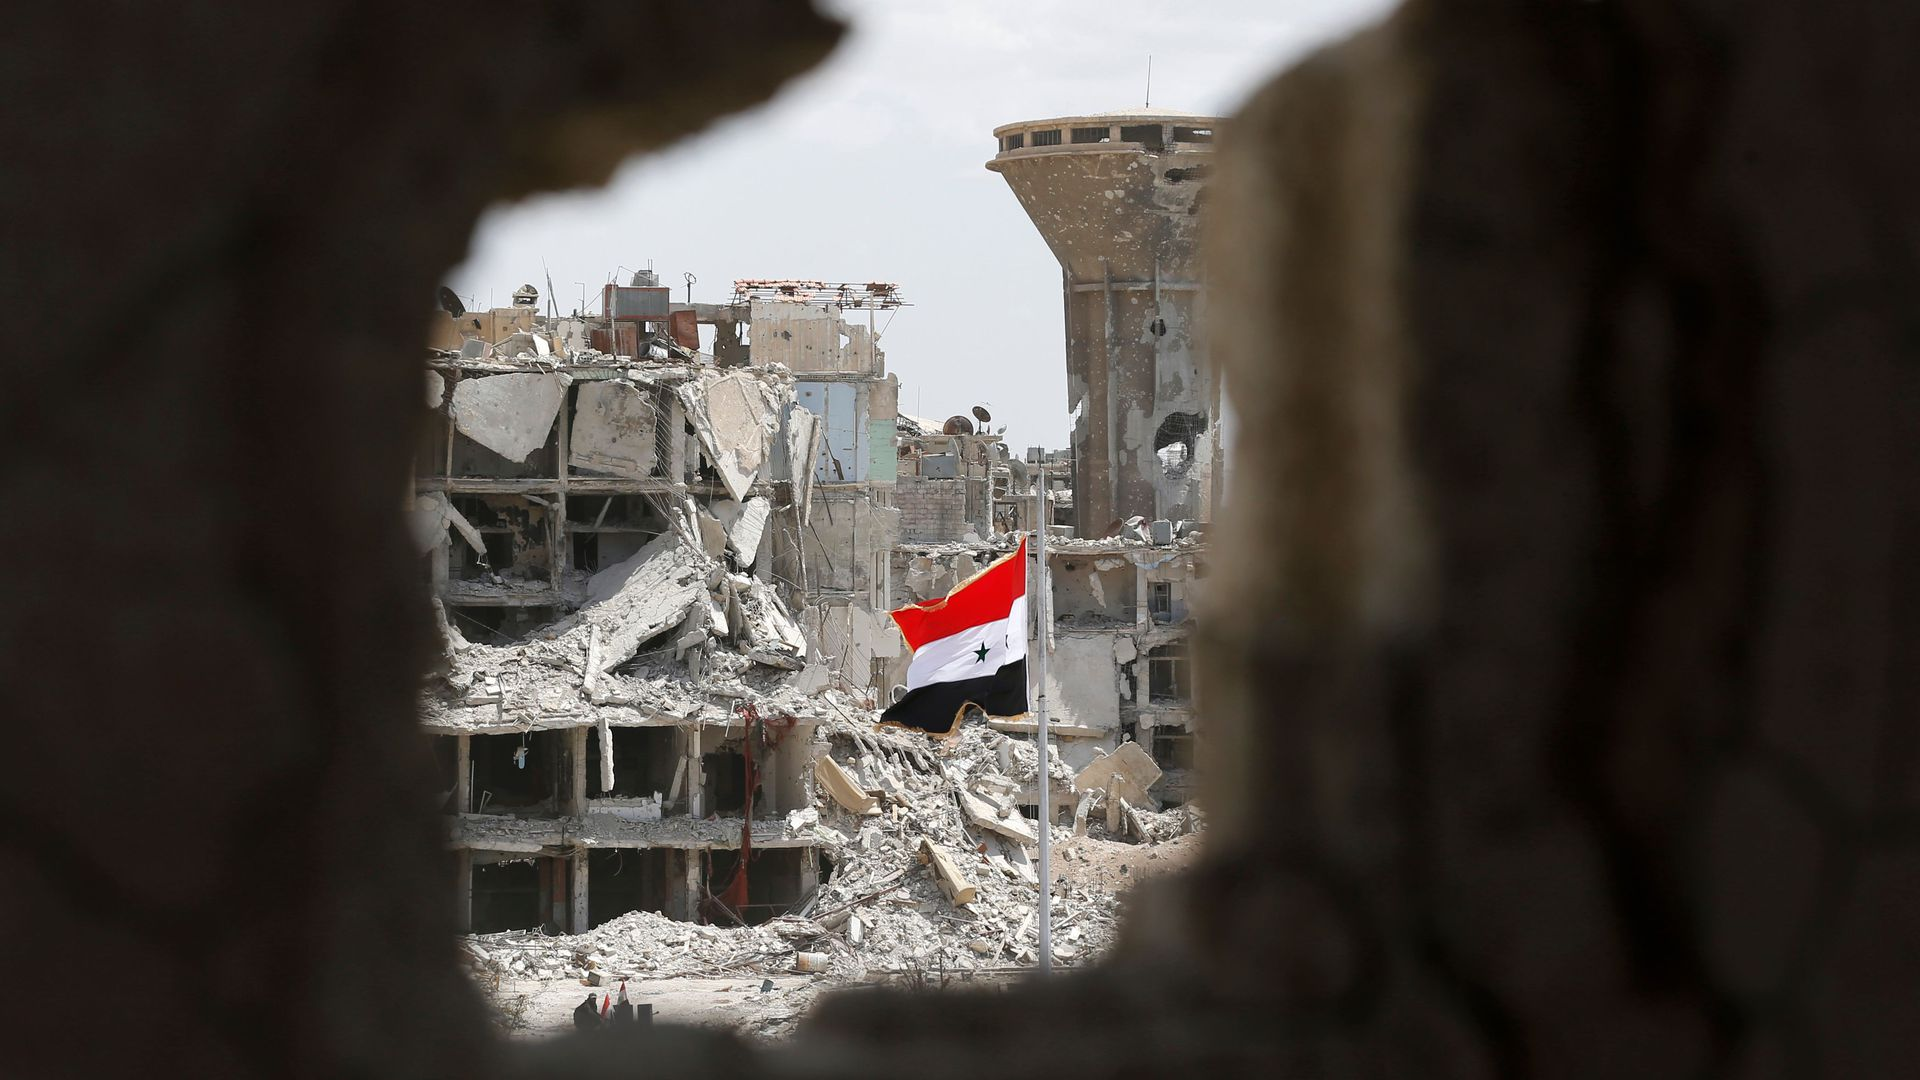 A Syrian flag flying amid rubble.